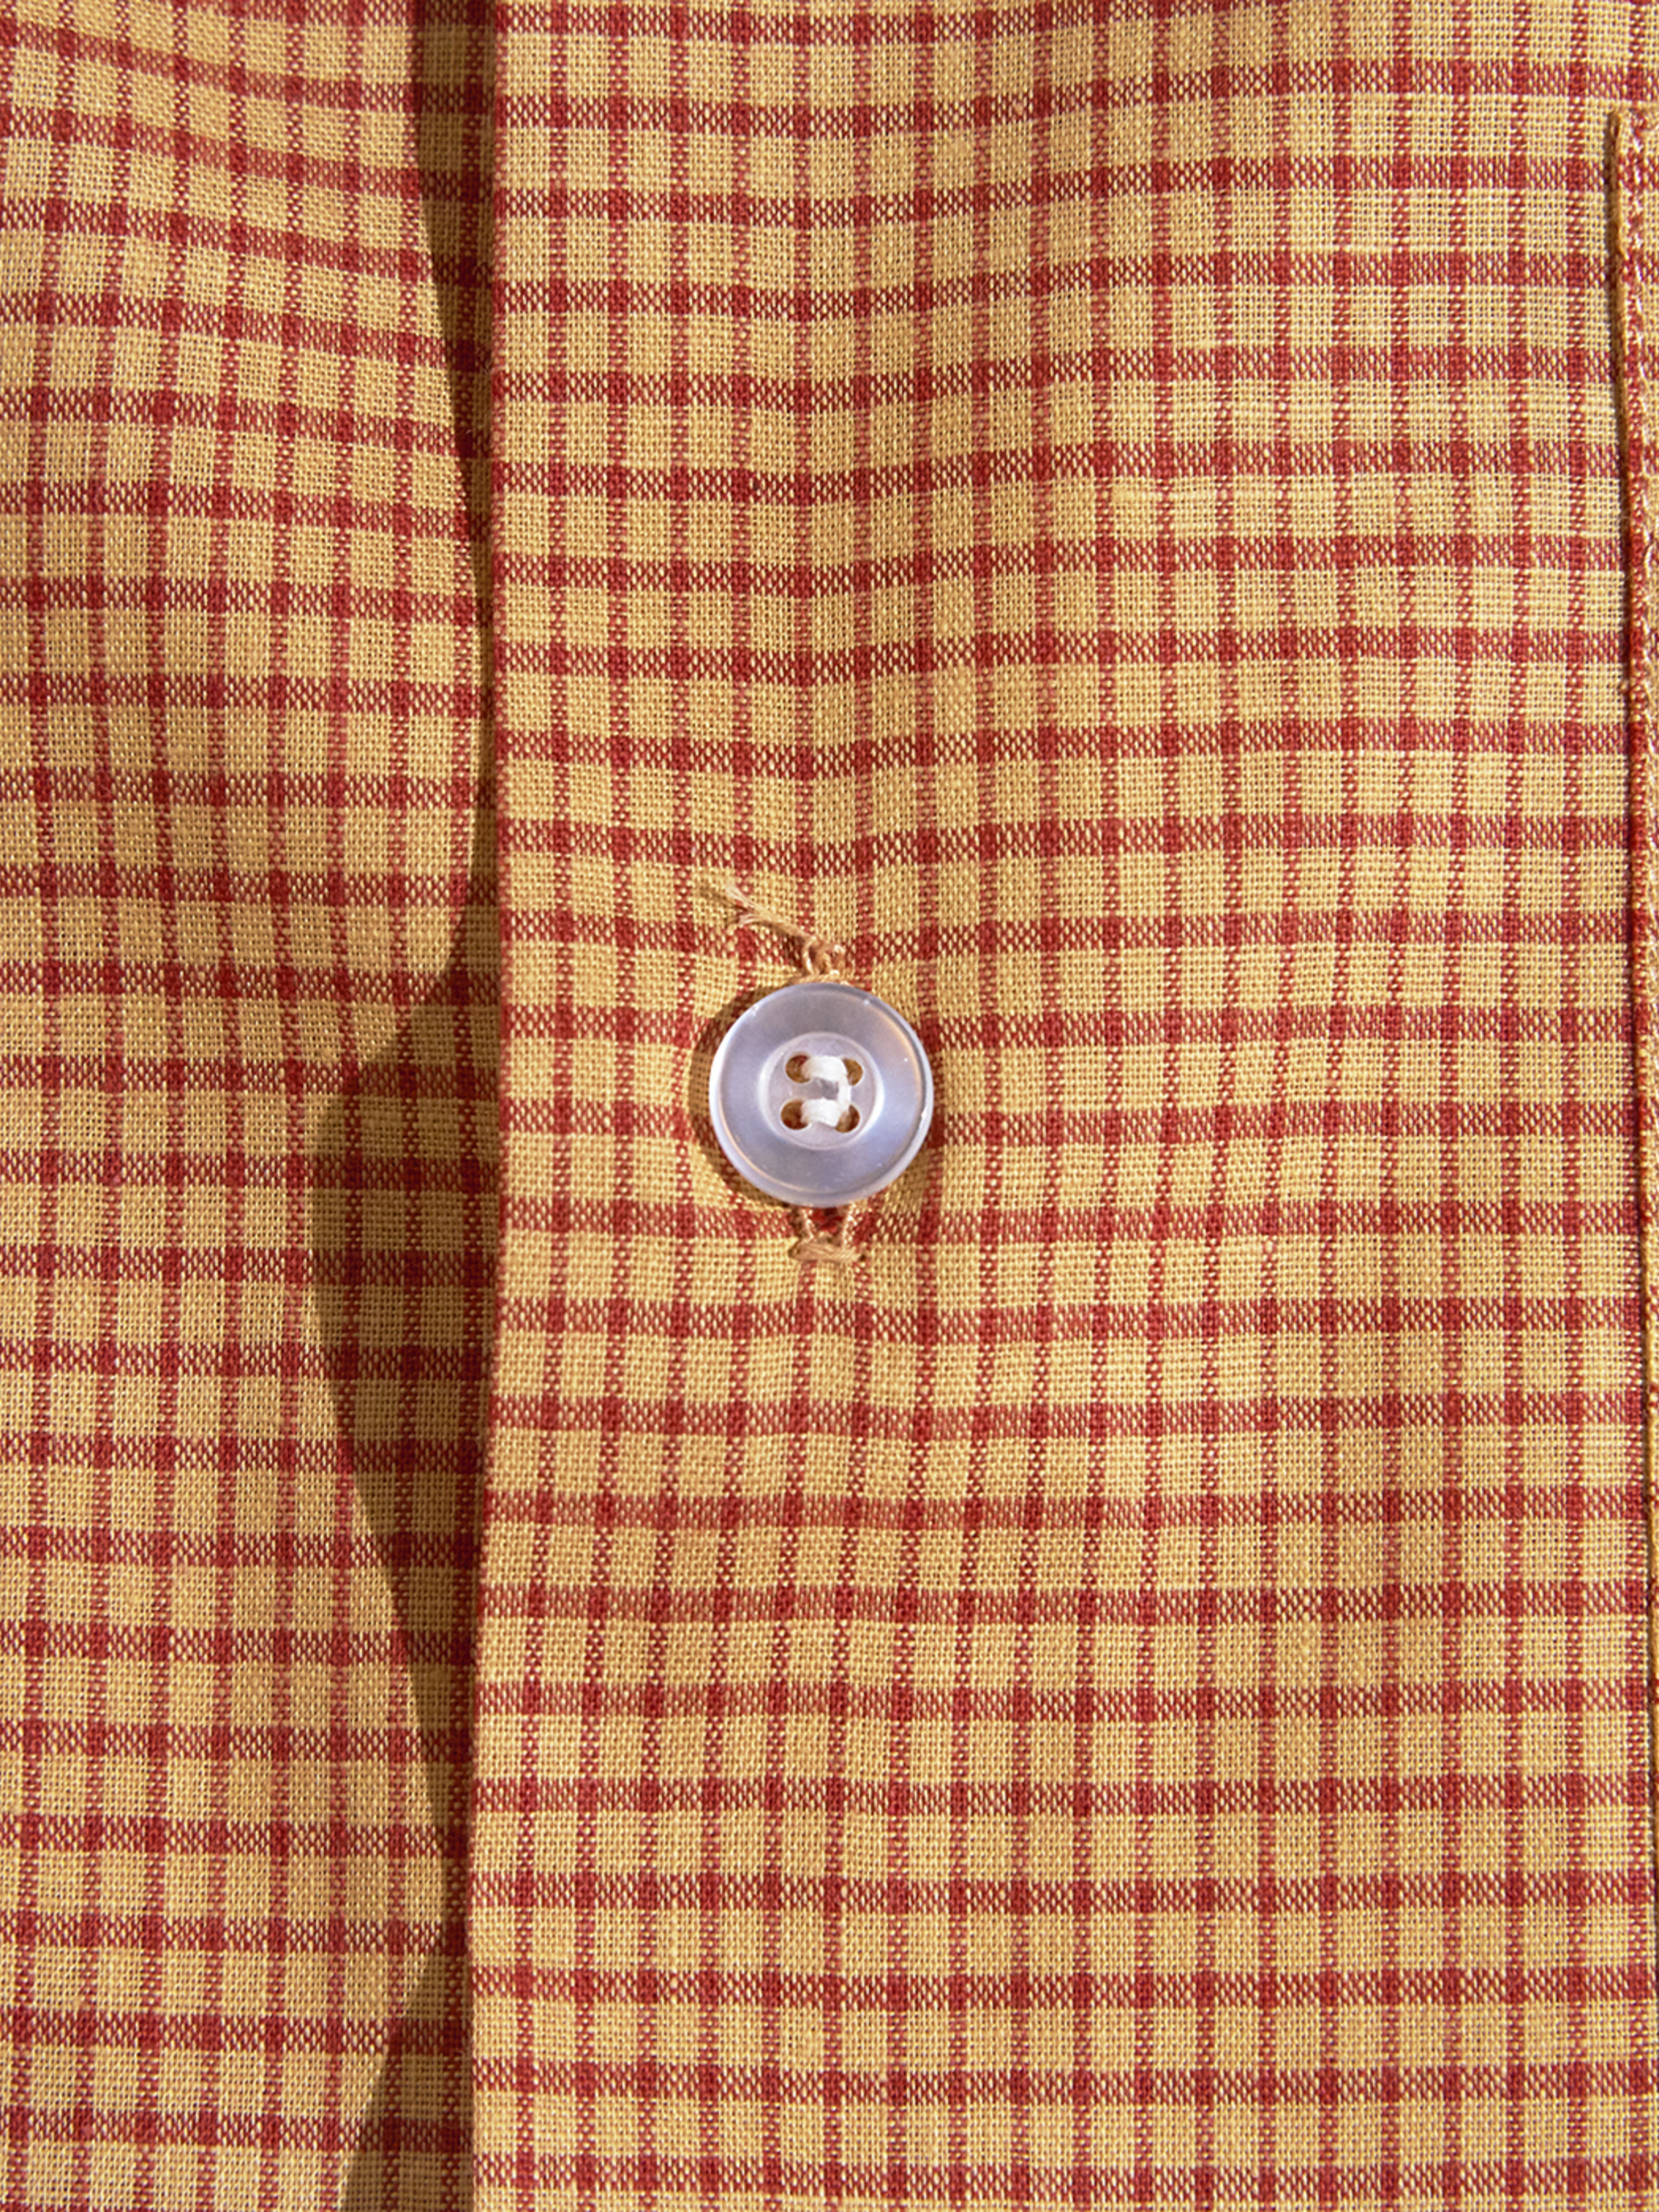 "NOS 1970s ""FRUIT OF THE LOOM"" cotton shirt -CHECK-"